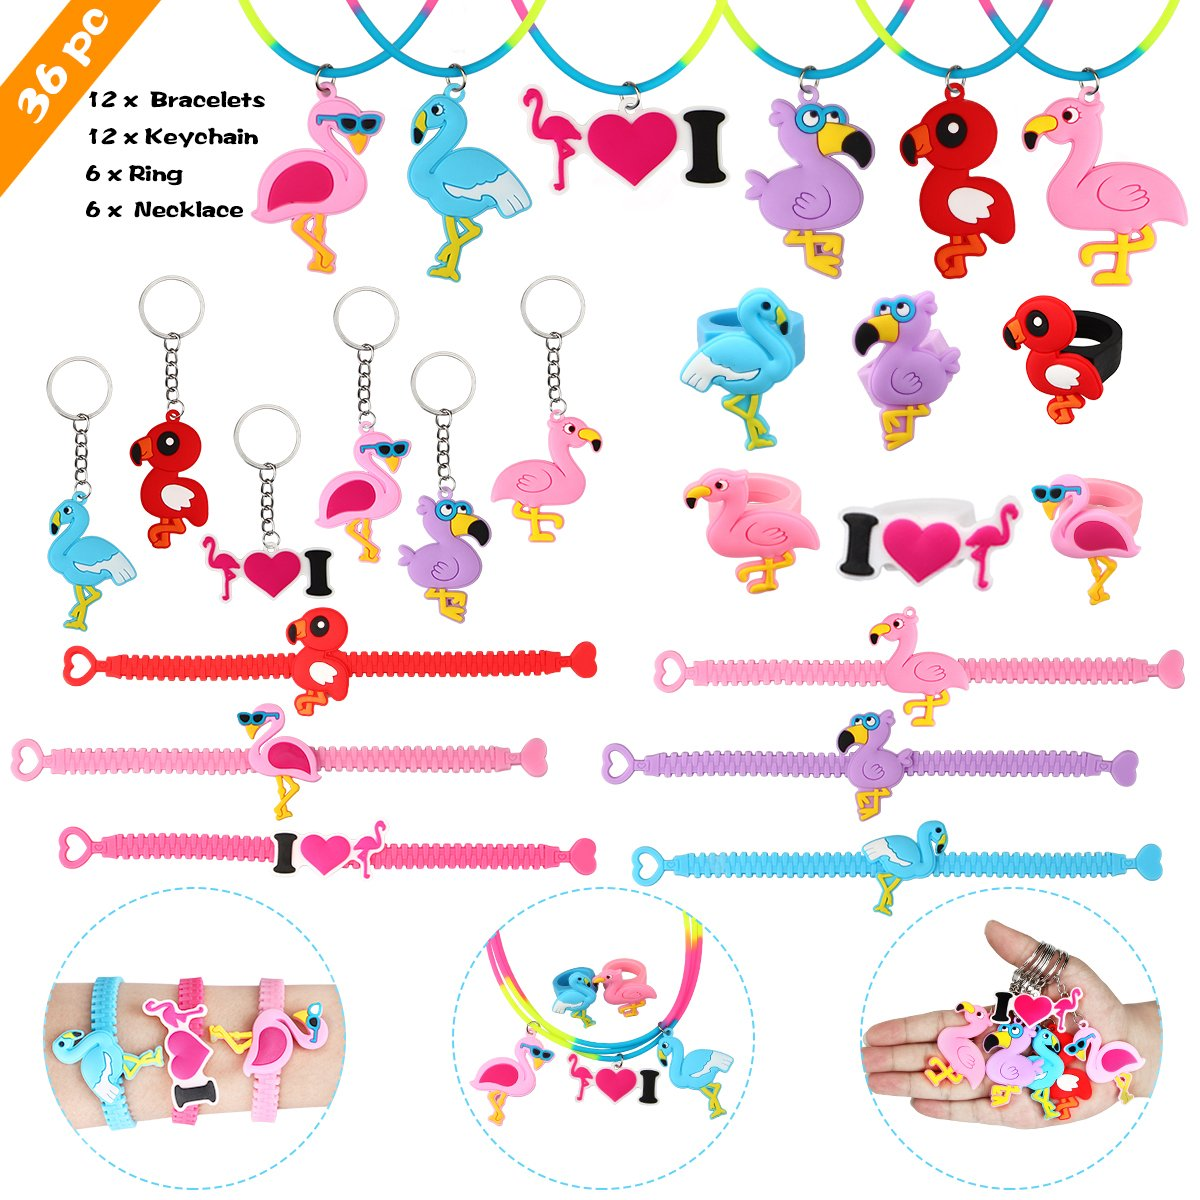 Aitey Flamingo Party Supplies, Flamingo Bracelets, Rings, Necklace and Keychains, Rainbow Flamingo Birthday Party Favors Set Prizes Gift for Kids and Girls (36 Packs) by Aitey (Image #1)